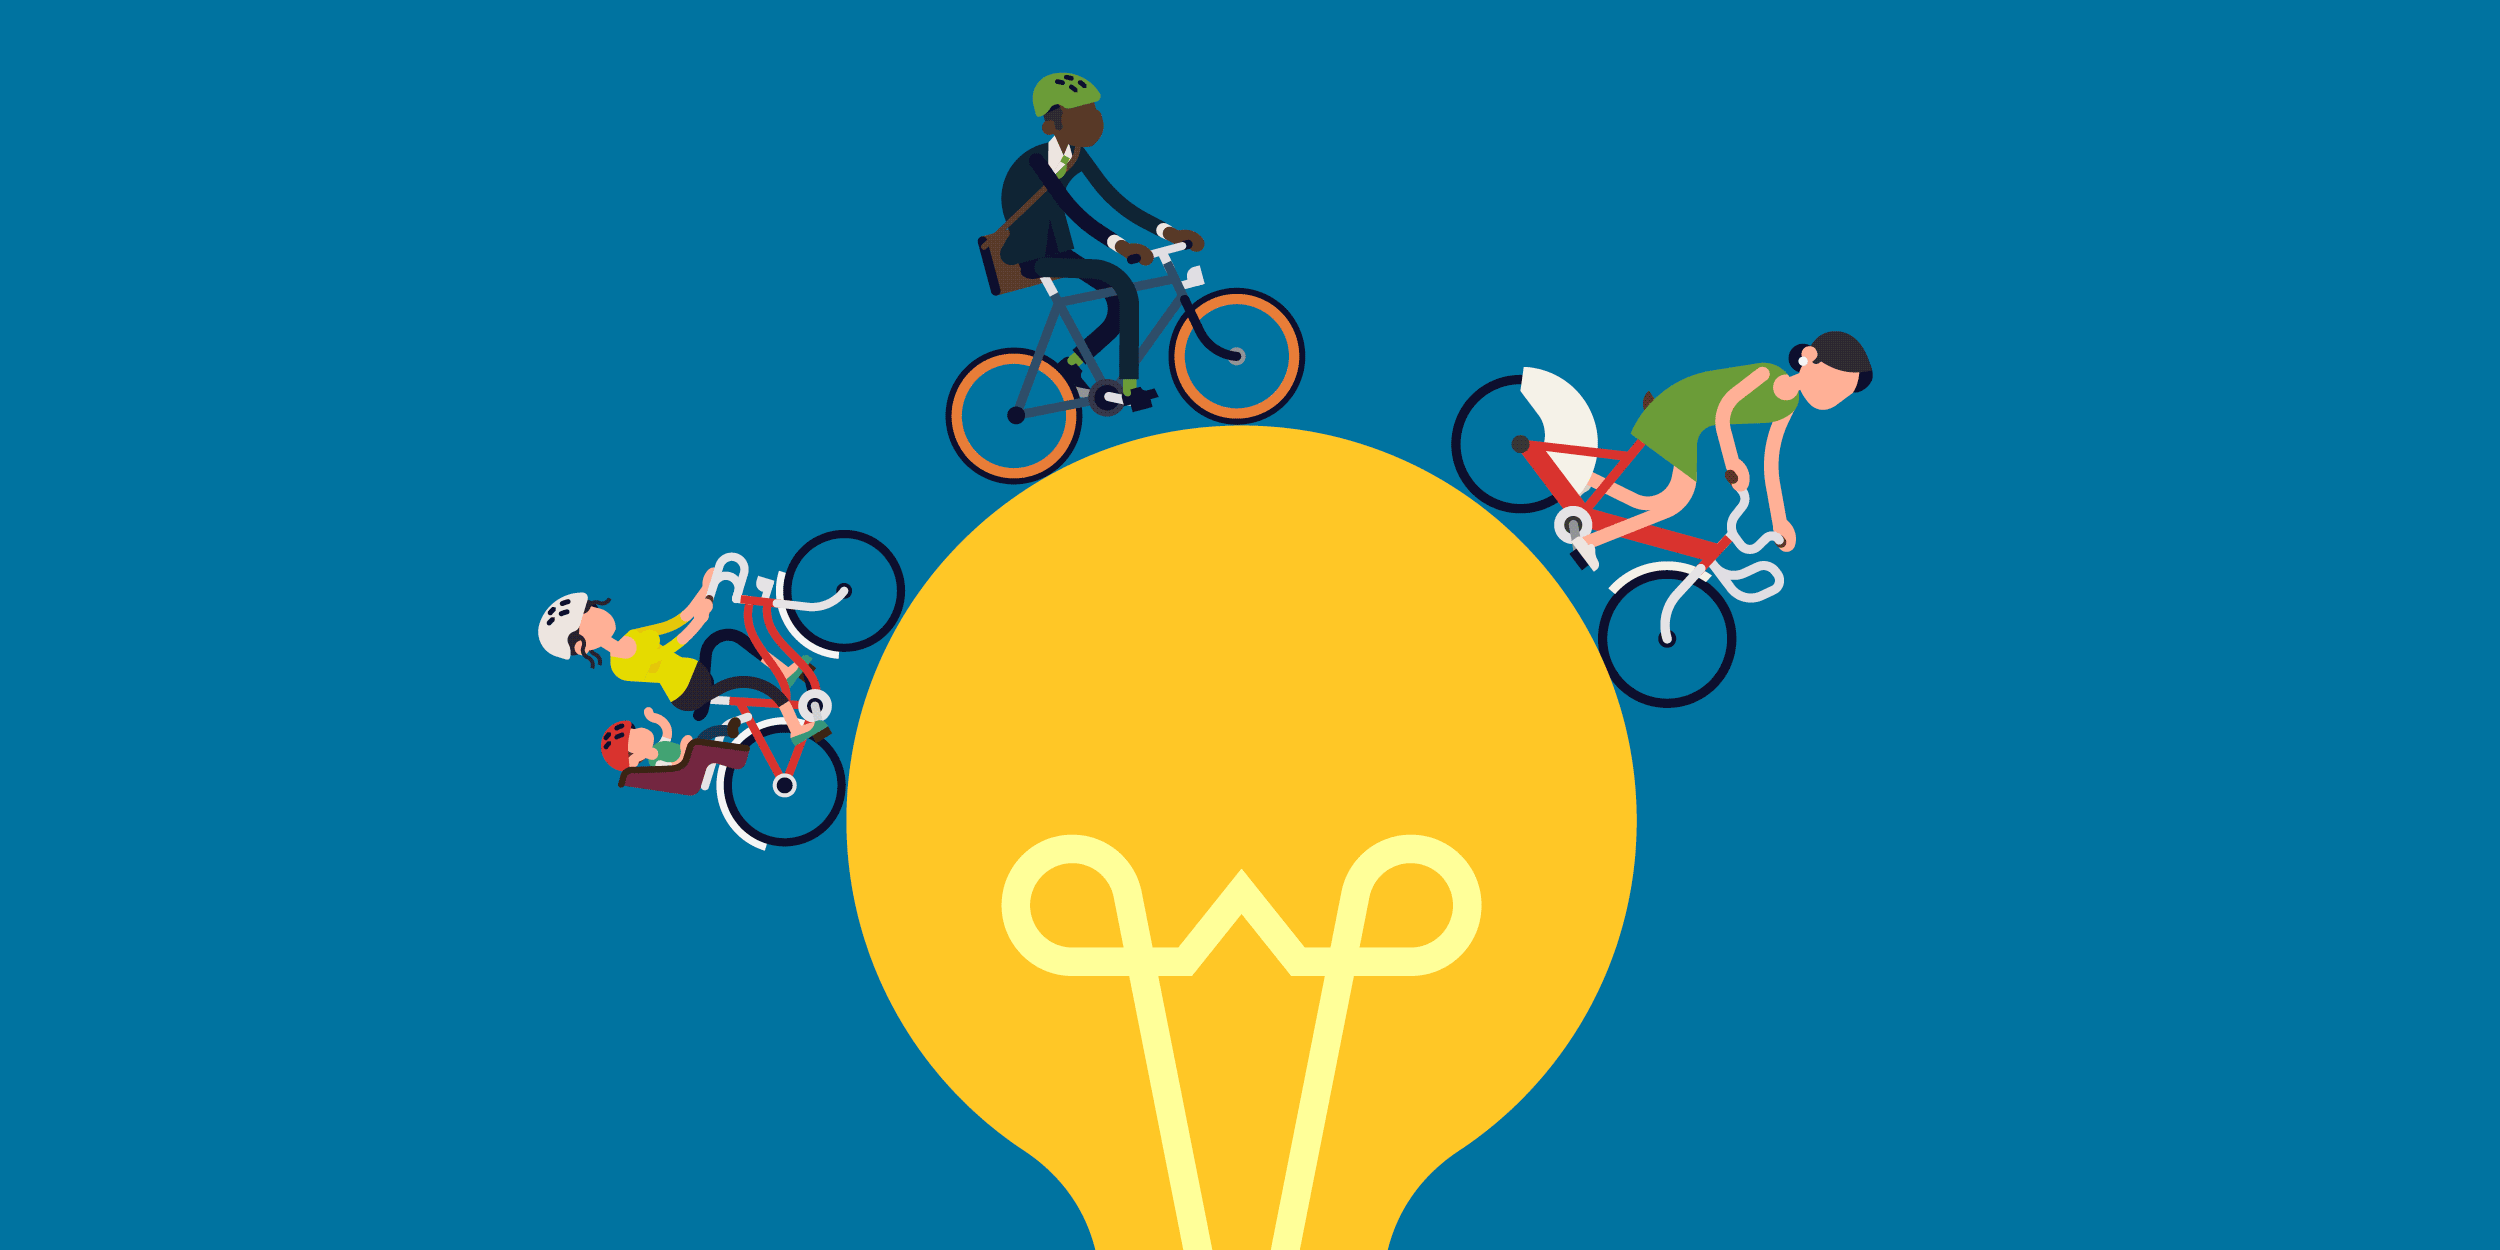 an illustration of a mom, a business person, and another woman riding bicycles on top of a lightbulb, symbolizing B!KE's vision of the bicycle as a tool for personal empowerment